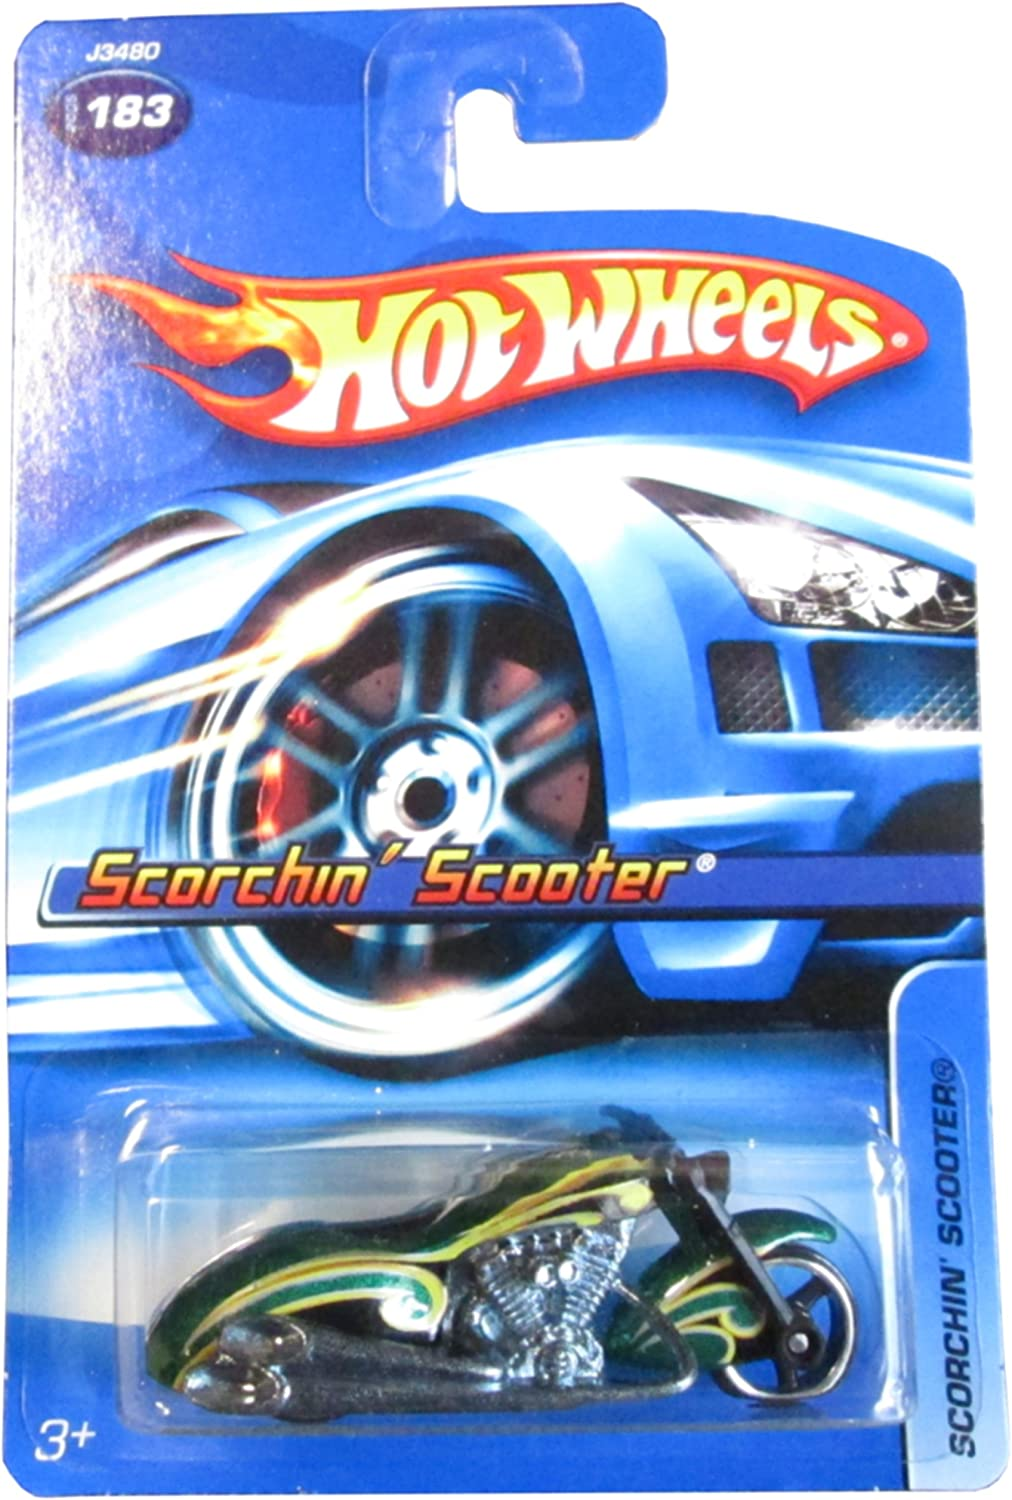 HOT WHEELS 2006 SCORCHIN/' SCOOTER #183 GREEN